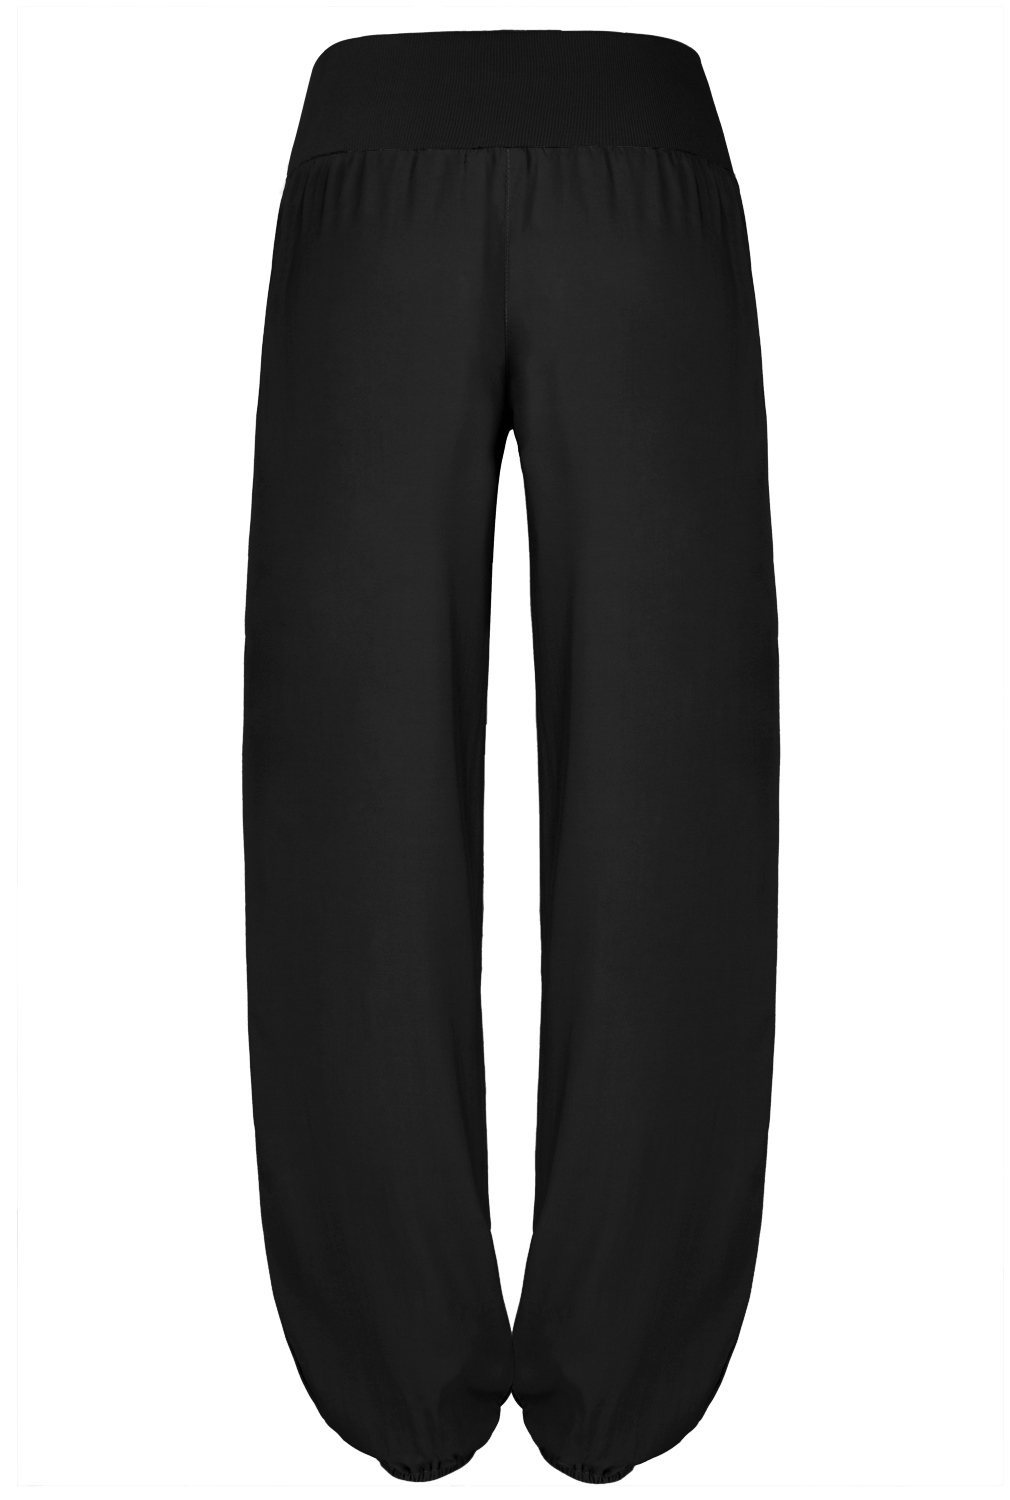 Popular Womens Button Deco Baggy Lounge Trousers Casual Harem Pants With Side Pockets | EBay